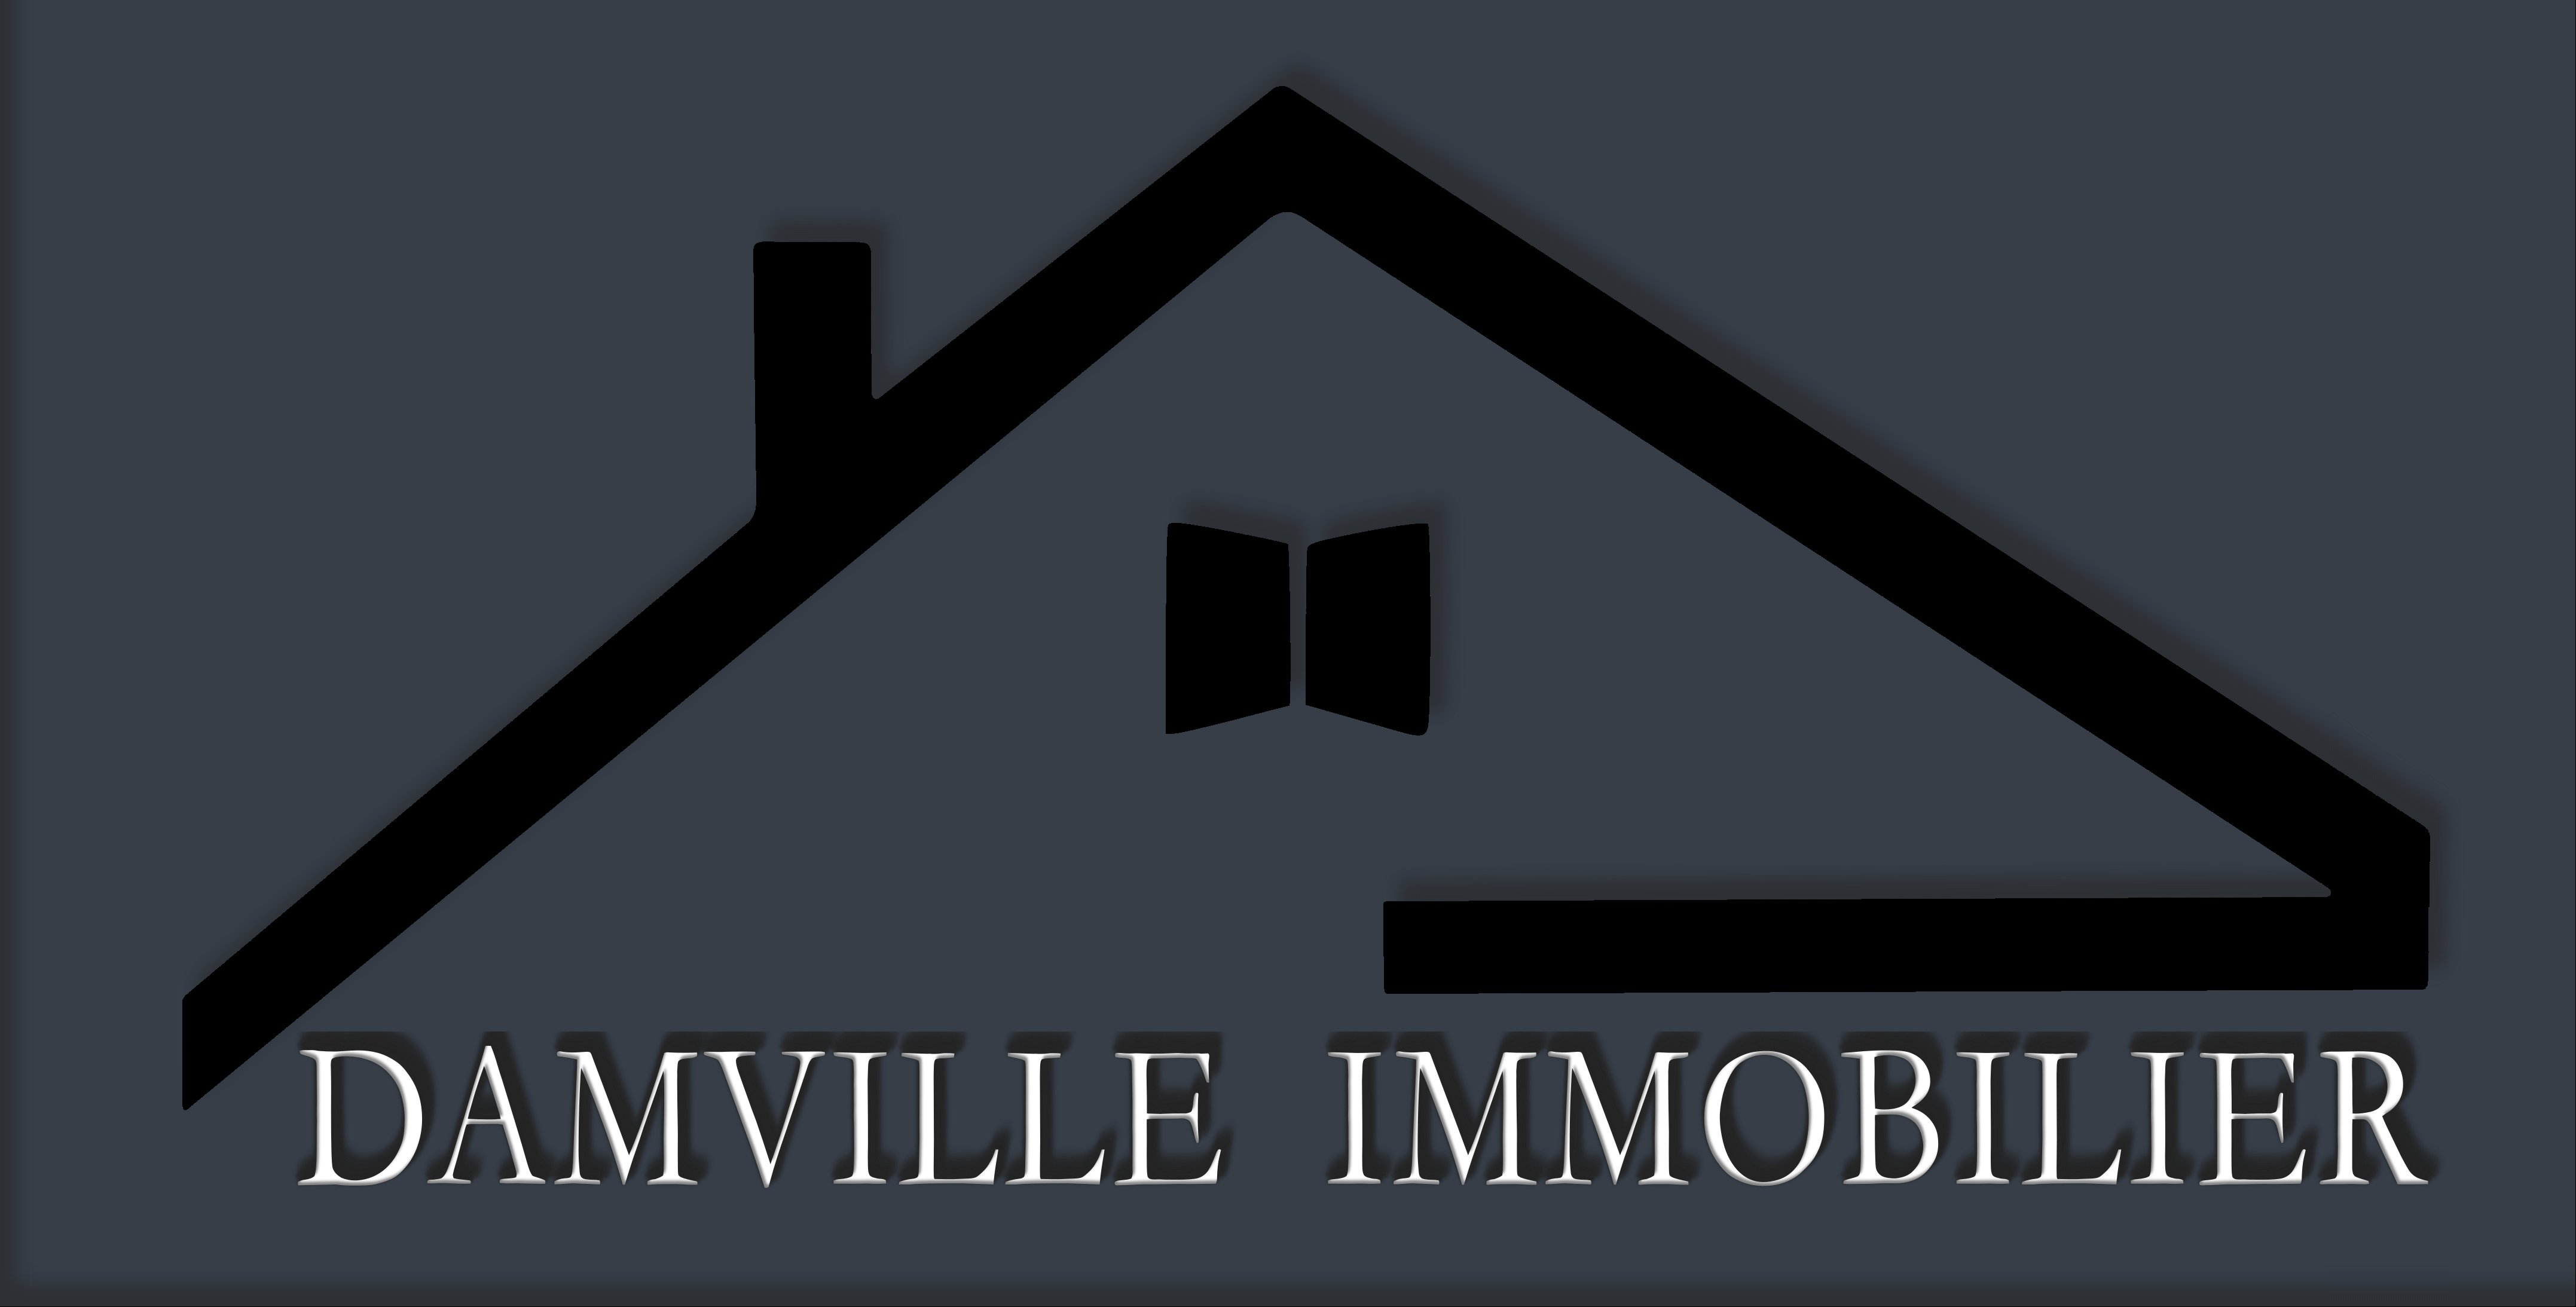 Damville Immobilier